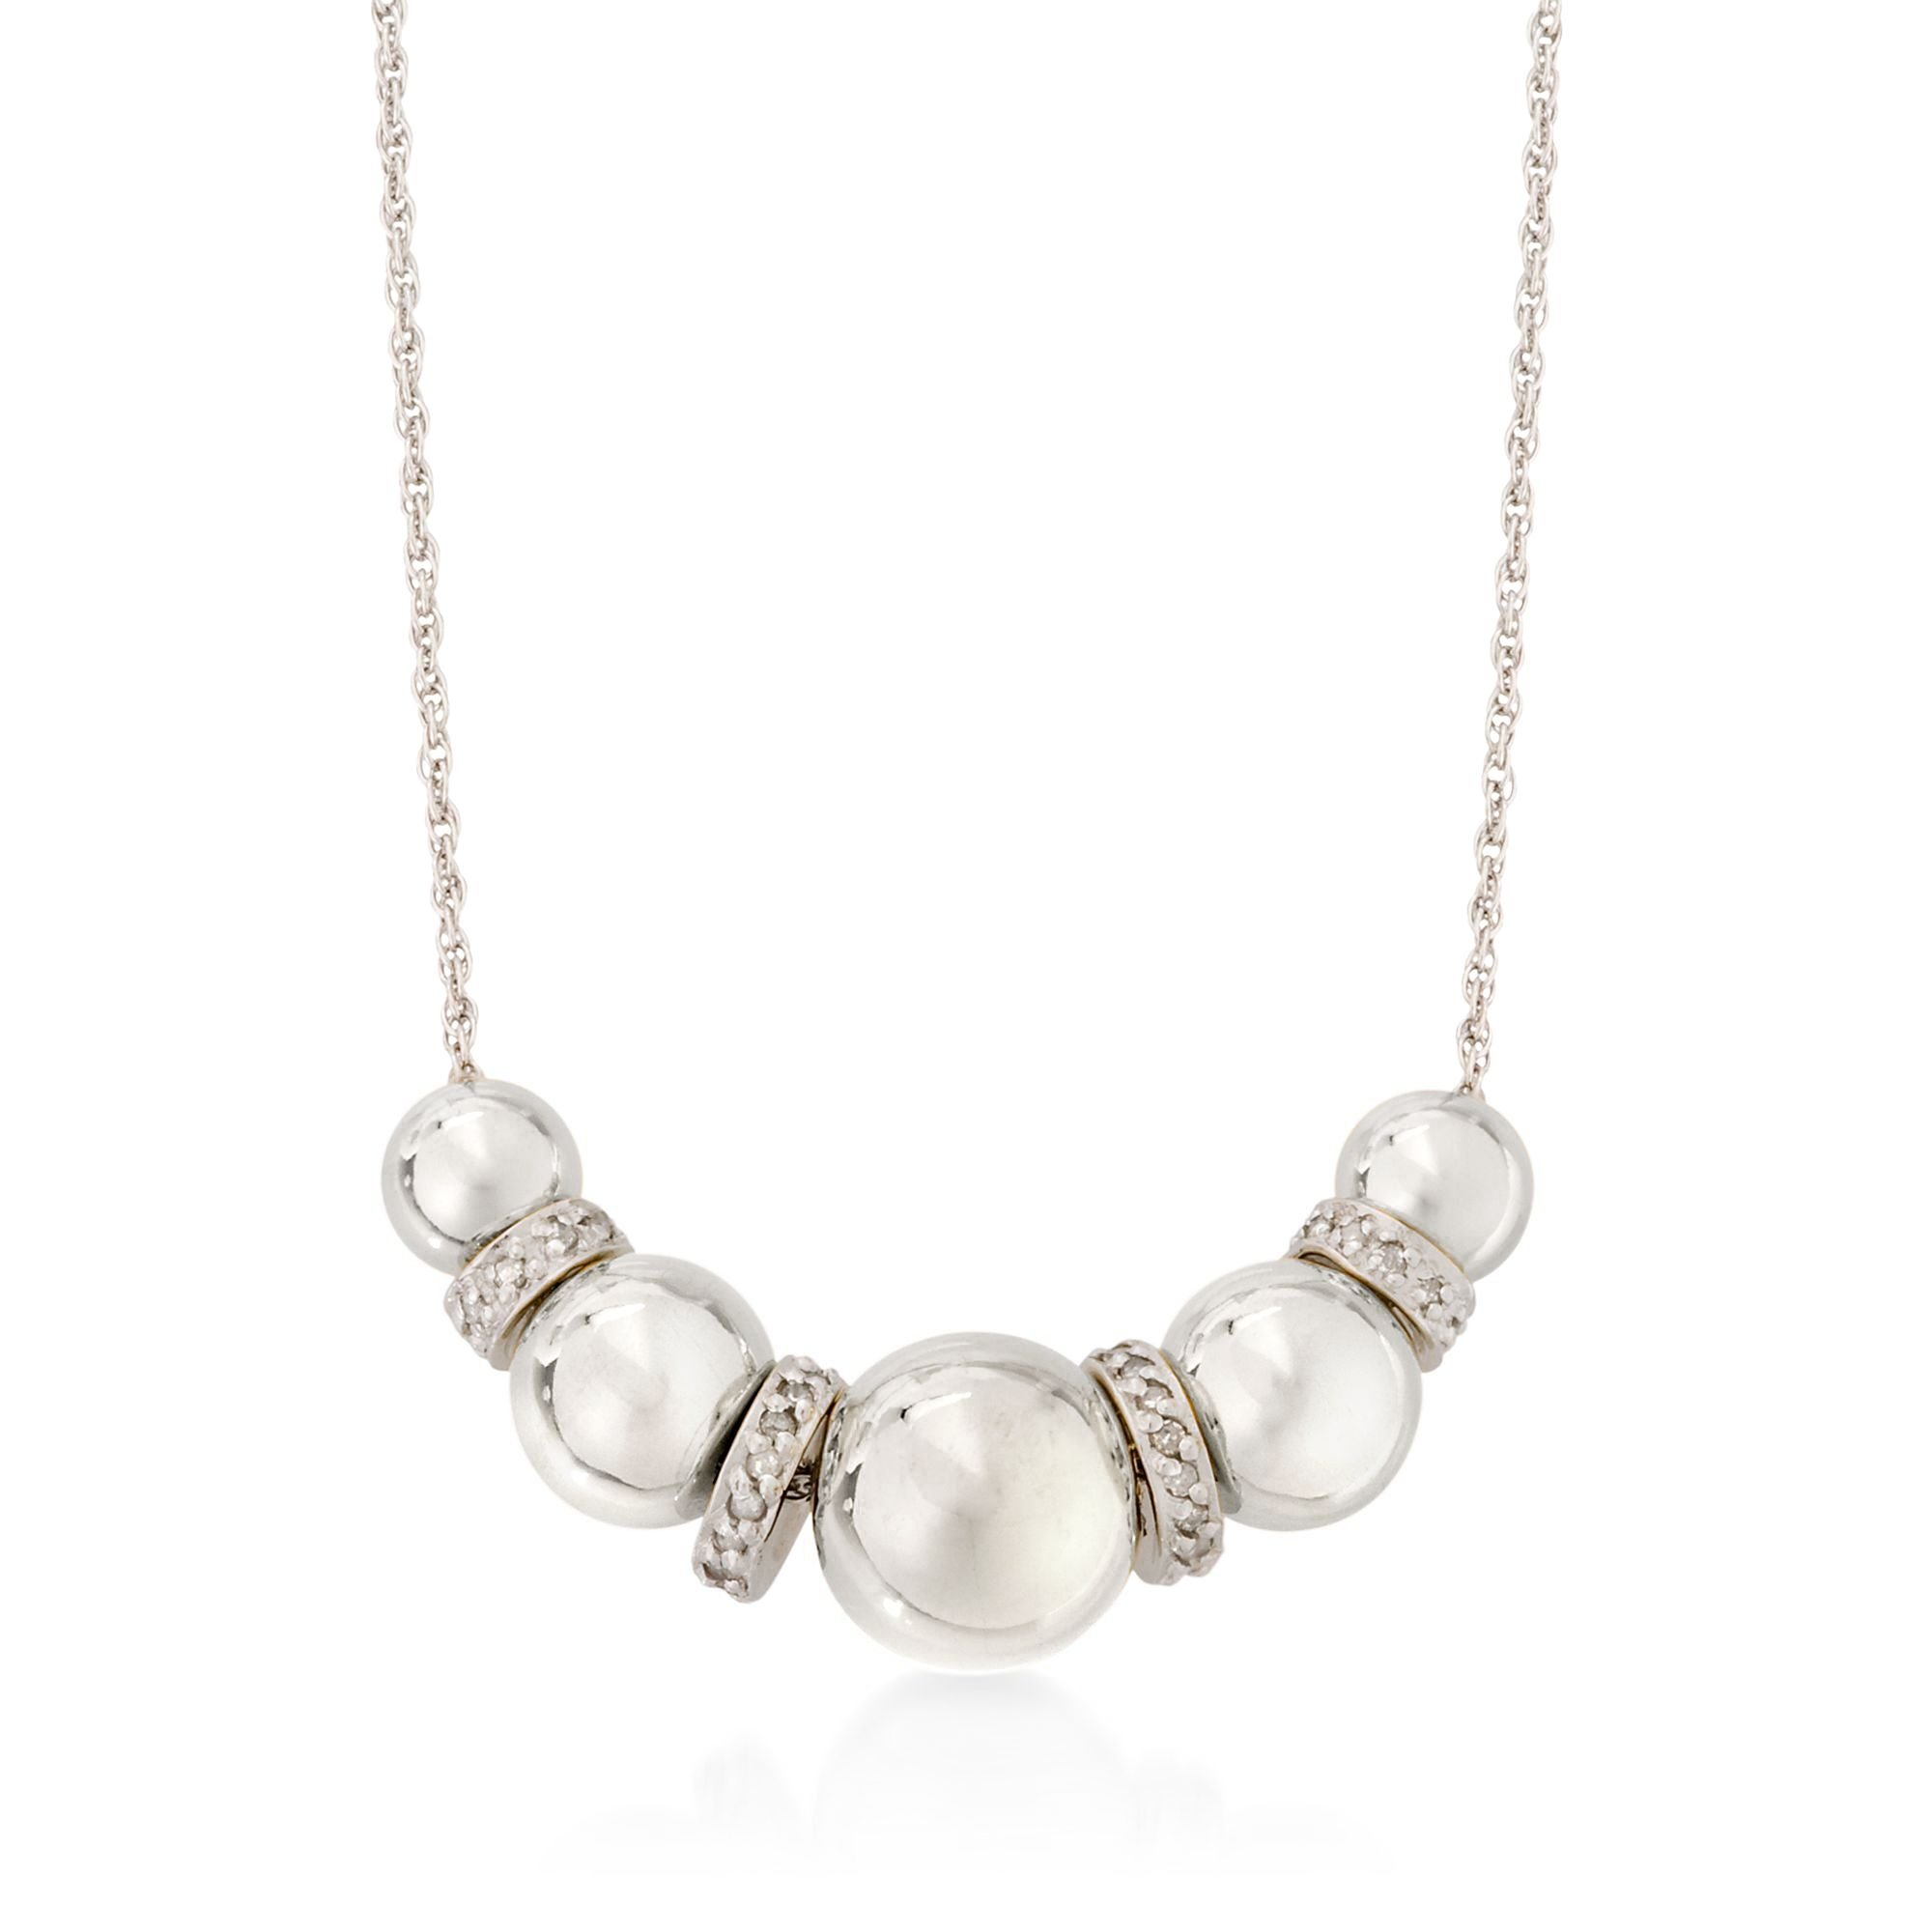 Ross-Simons 6-10mm Sterling Silver Bead Necklace With .20 ct. t.w. Diamonds by Ross-Simons (Image #1)